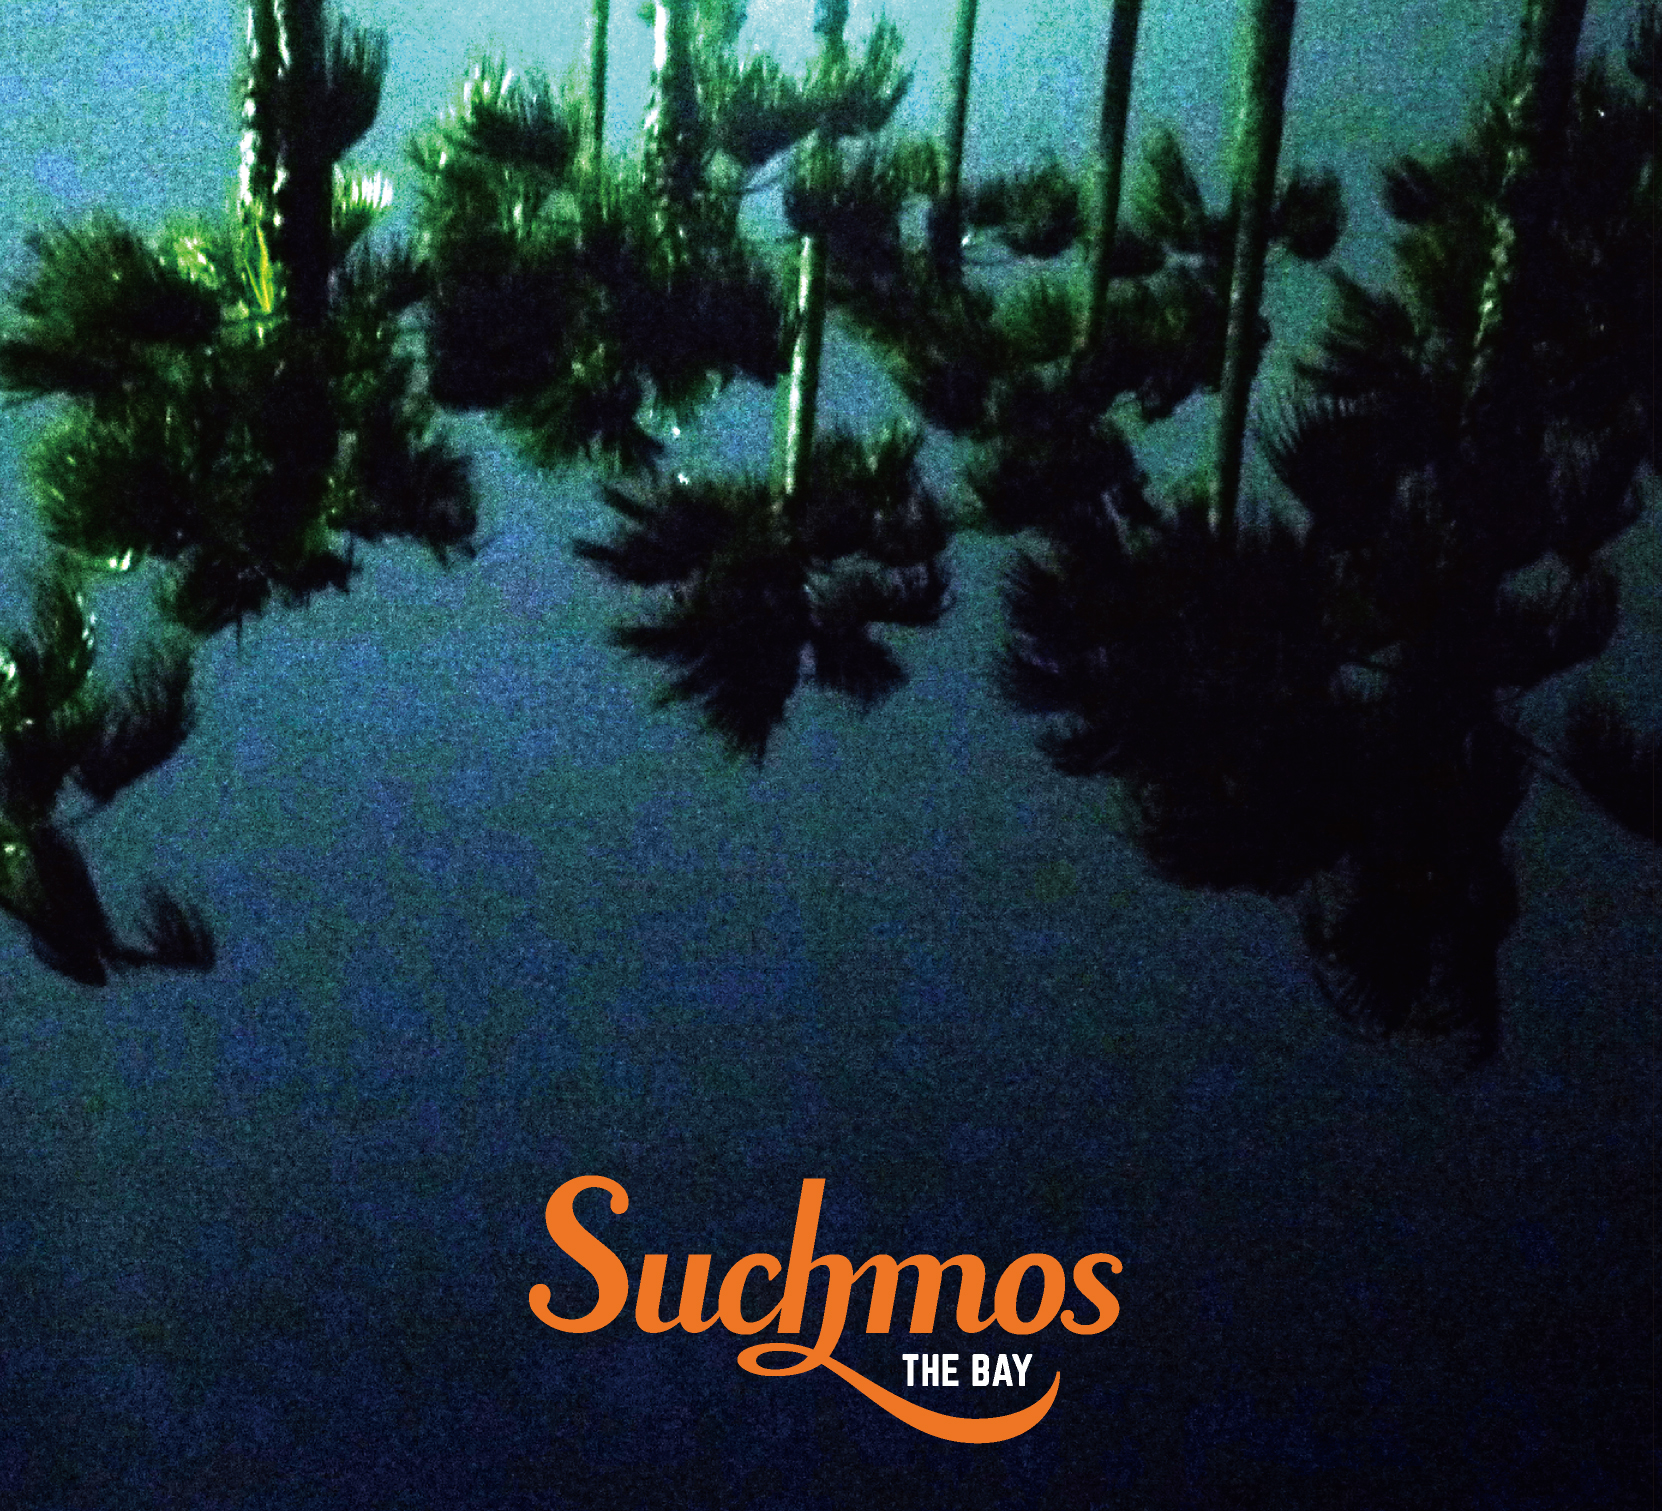 「THE BAY」Suchmos (PECF-3153)2015/7/8